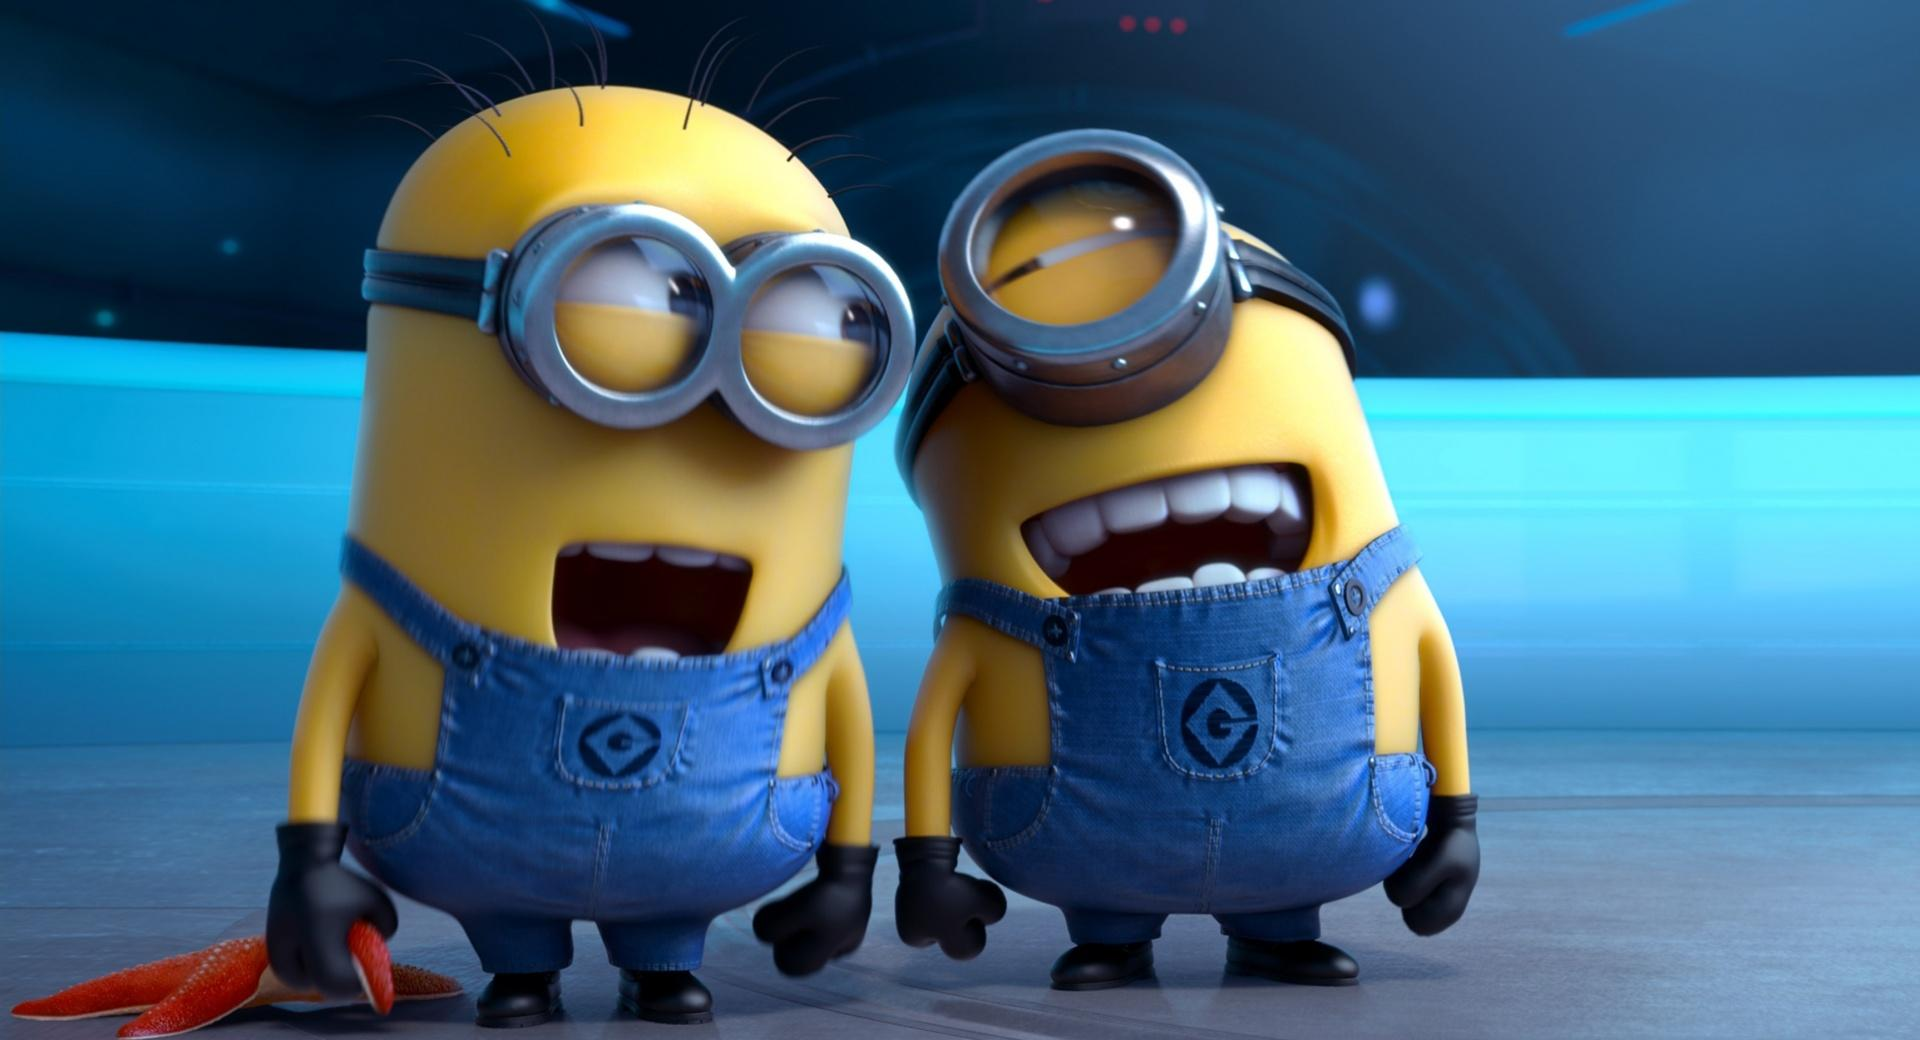 Despicable Me 2 Laughing Minions at 320 x 480 iPhone size wallpapers HD quality